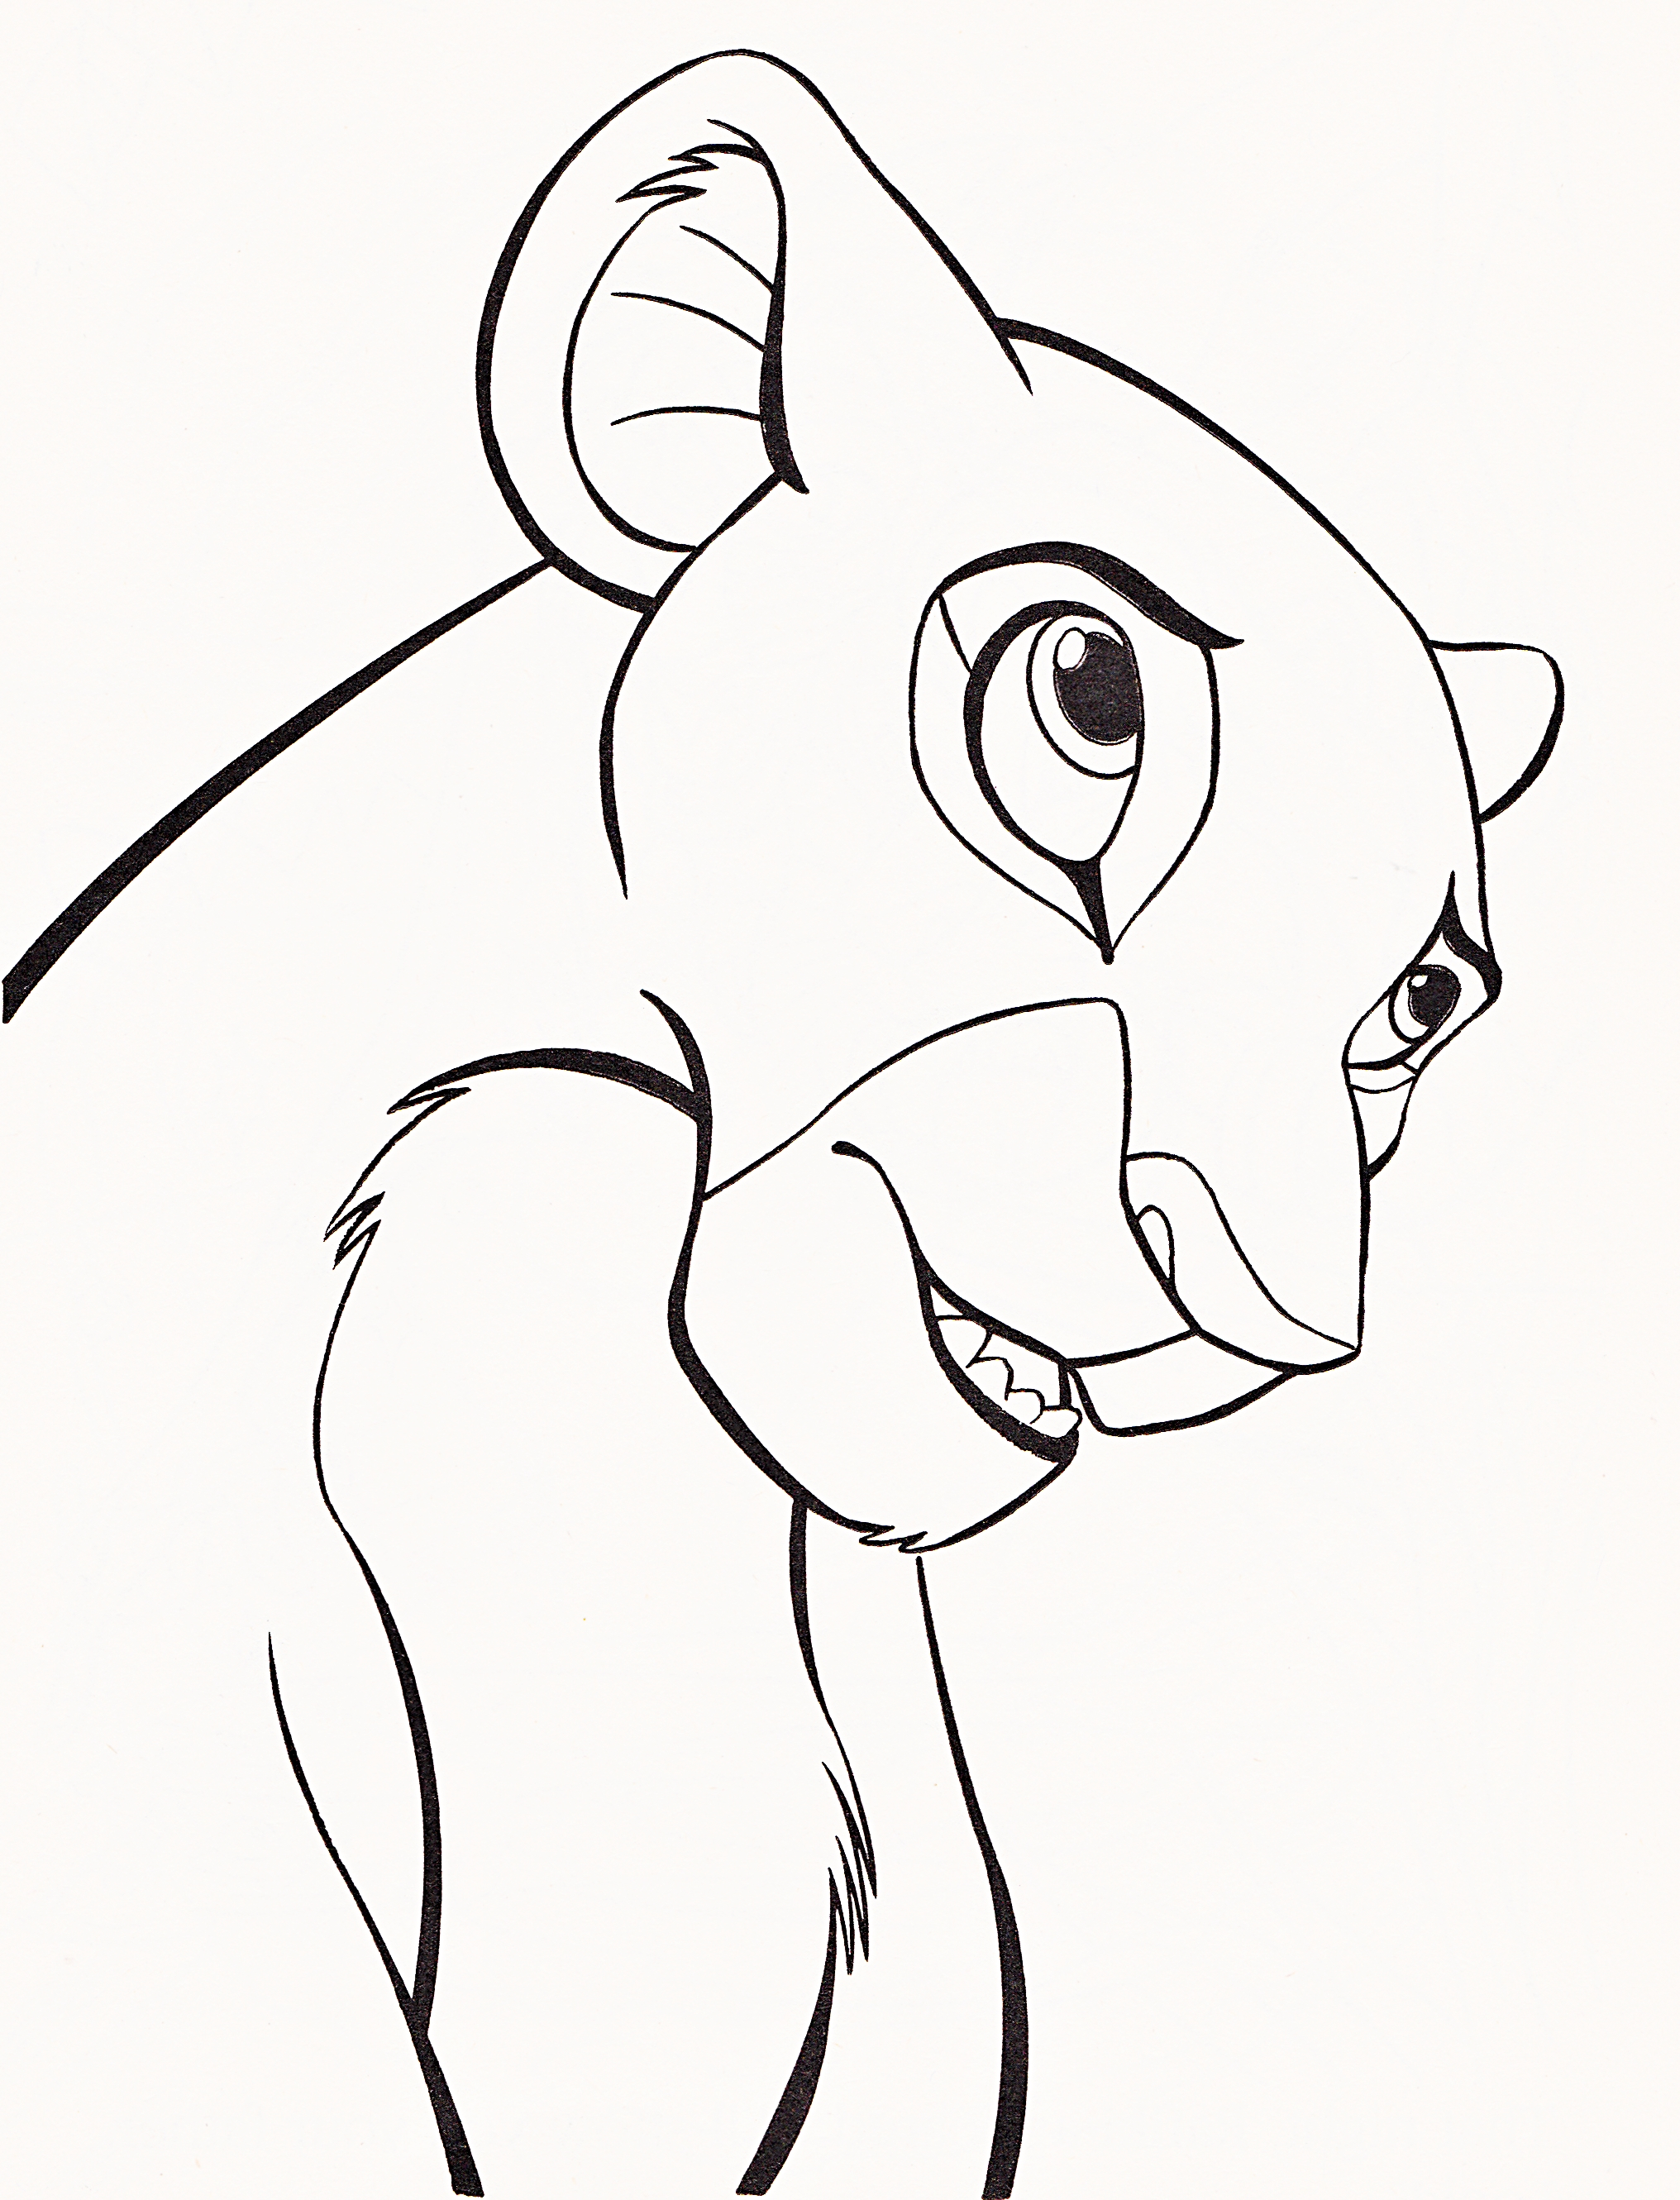 Disney pages all characters coloring pages for All disney characters coloring pages